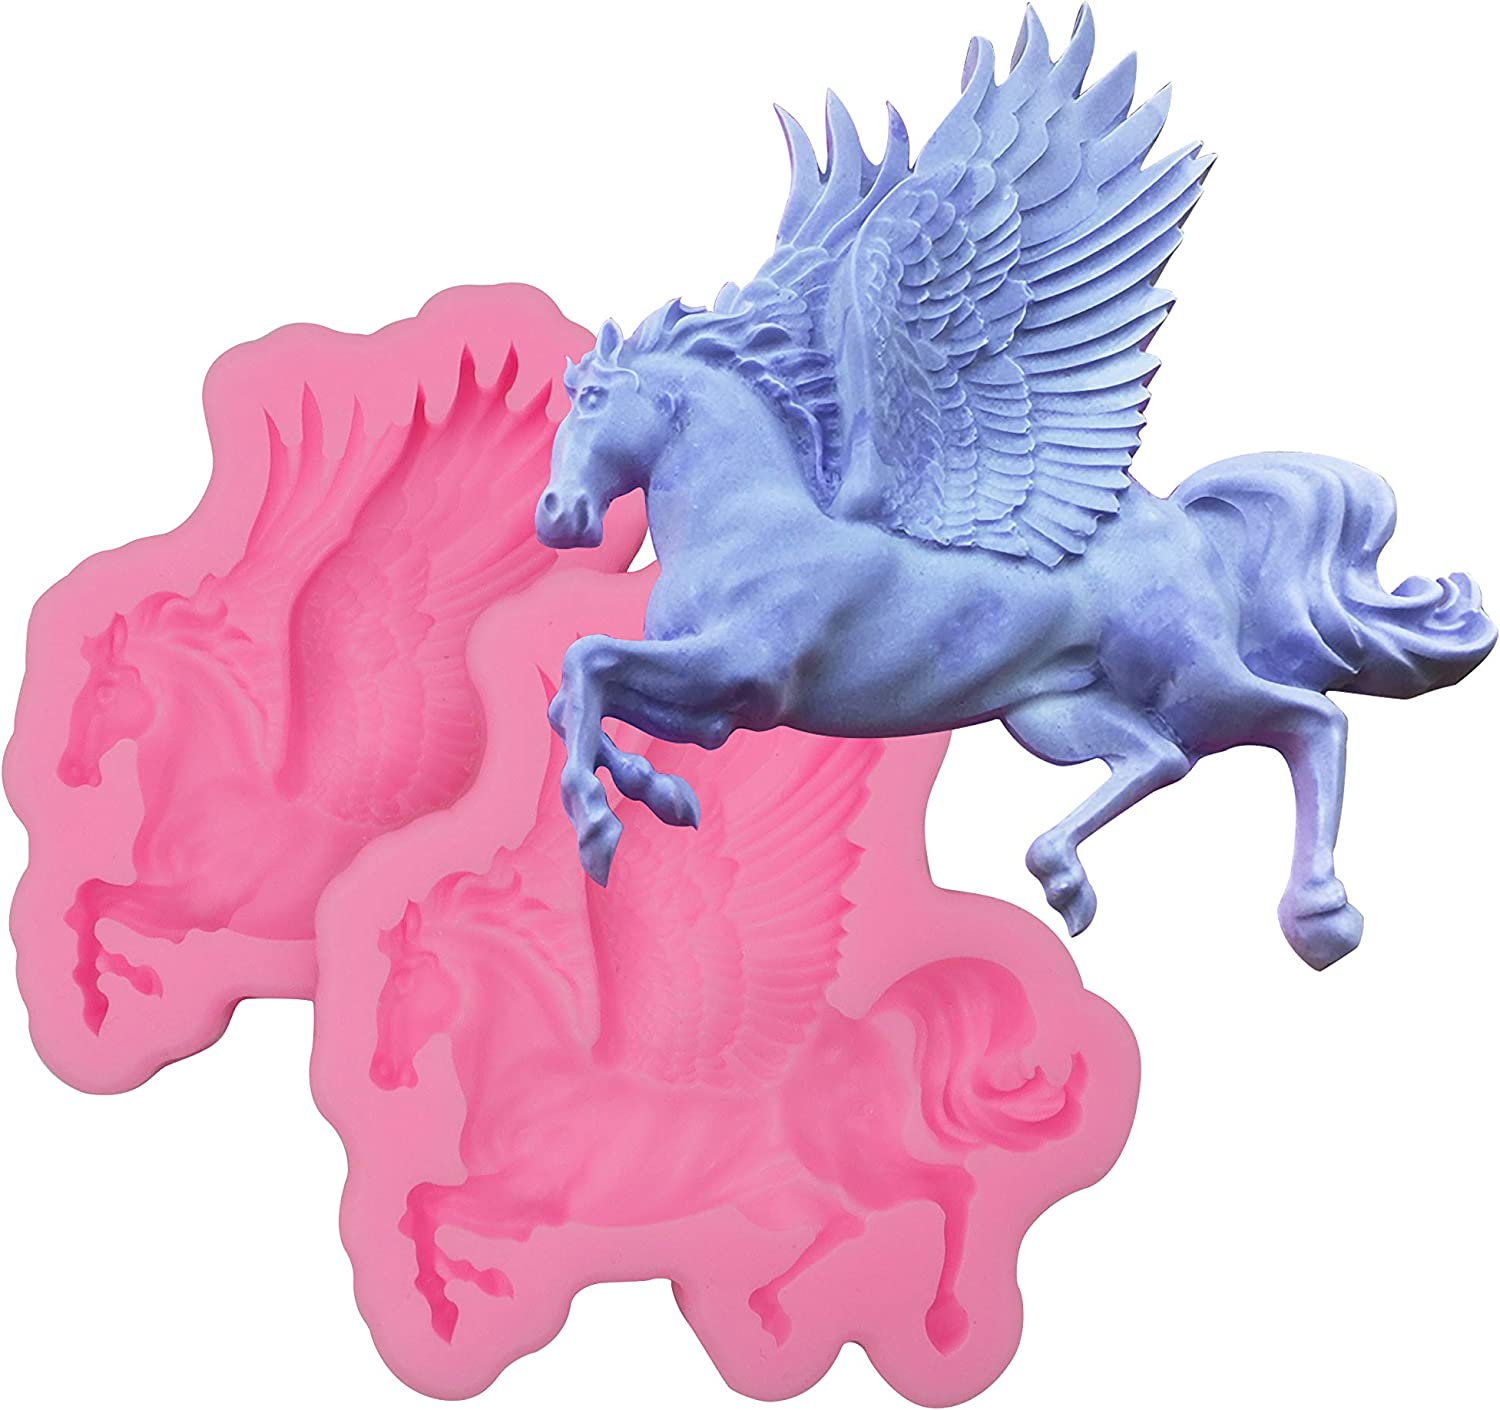 HengKe 2Pcs Flying Horse Silicone Mold,Horse Unicorn Mold,Pegasus Gummies,elderberry gummies for kids,Making Cake,Decoration,Chocolate,Polymer Clay,Cupcake Decor,Sugar Craft,Resin Clay Molding Baking